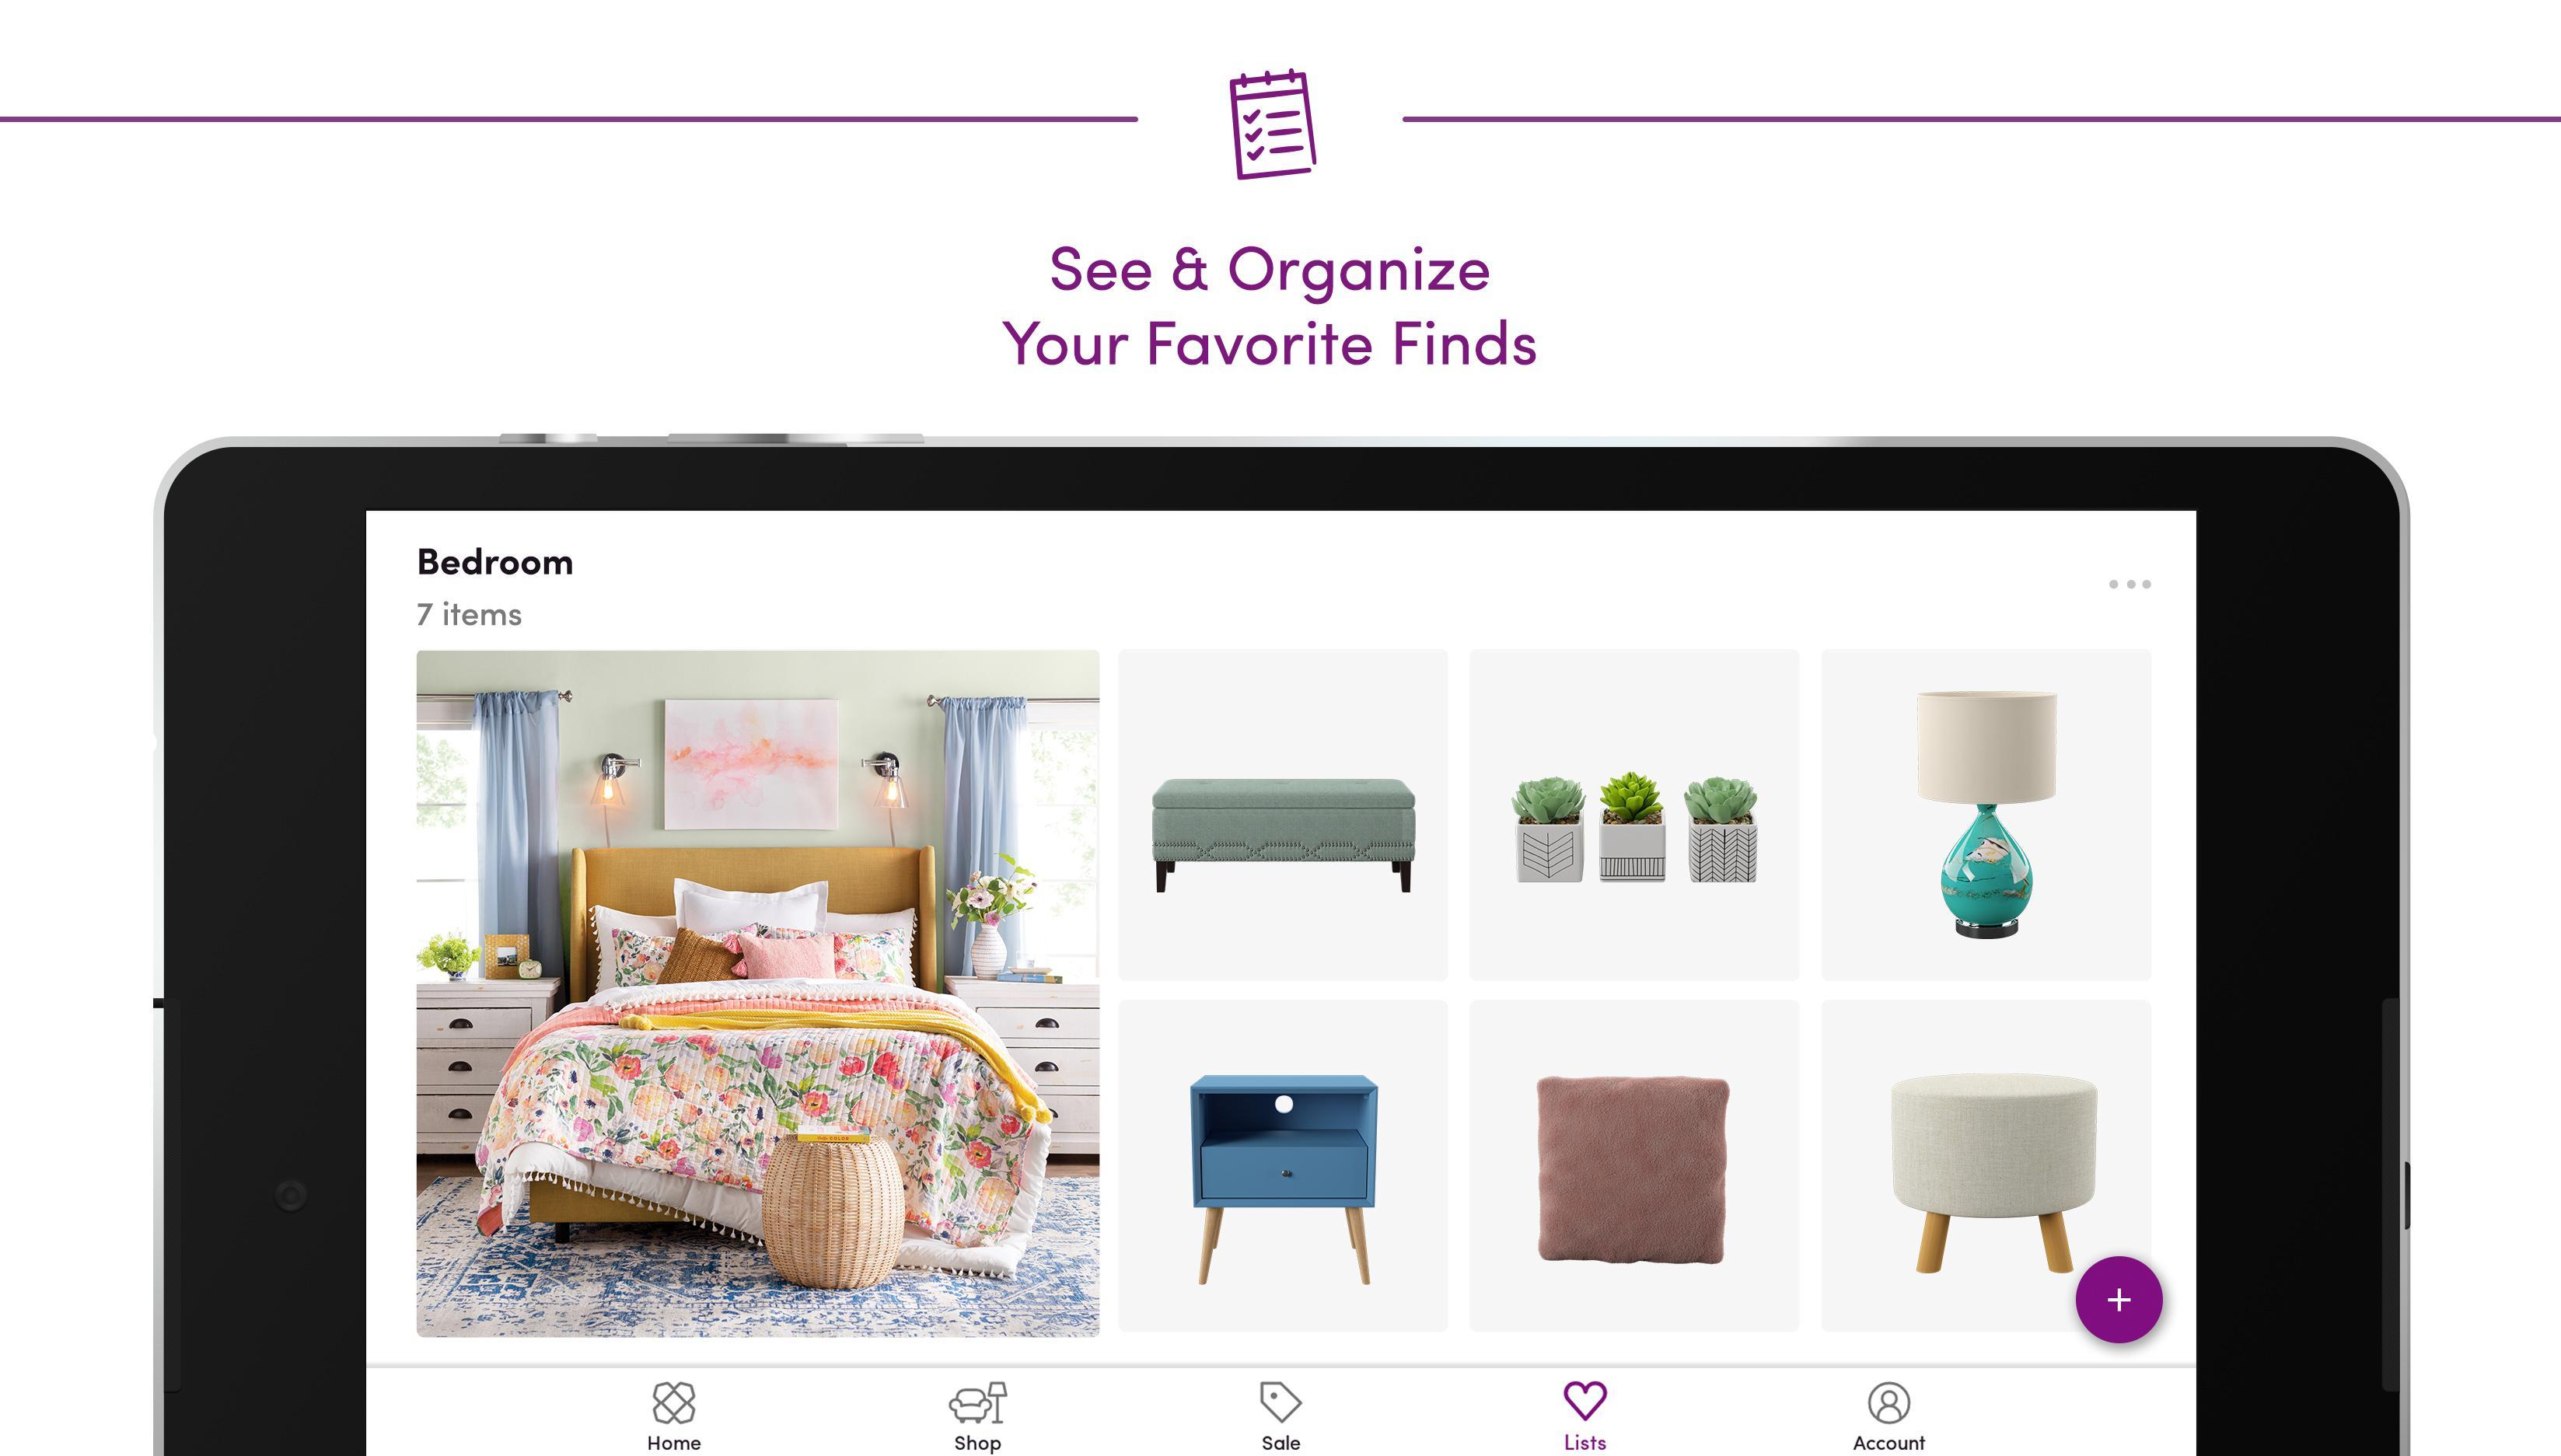 Wayfair Shop All Things Home 5.2.4 Screenshot 9